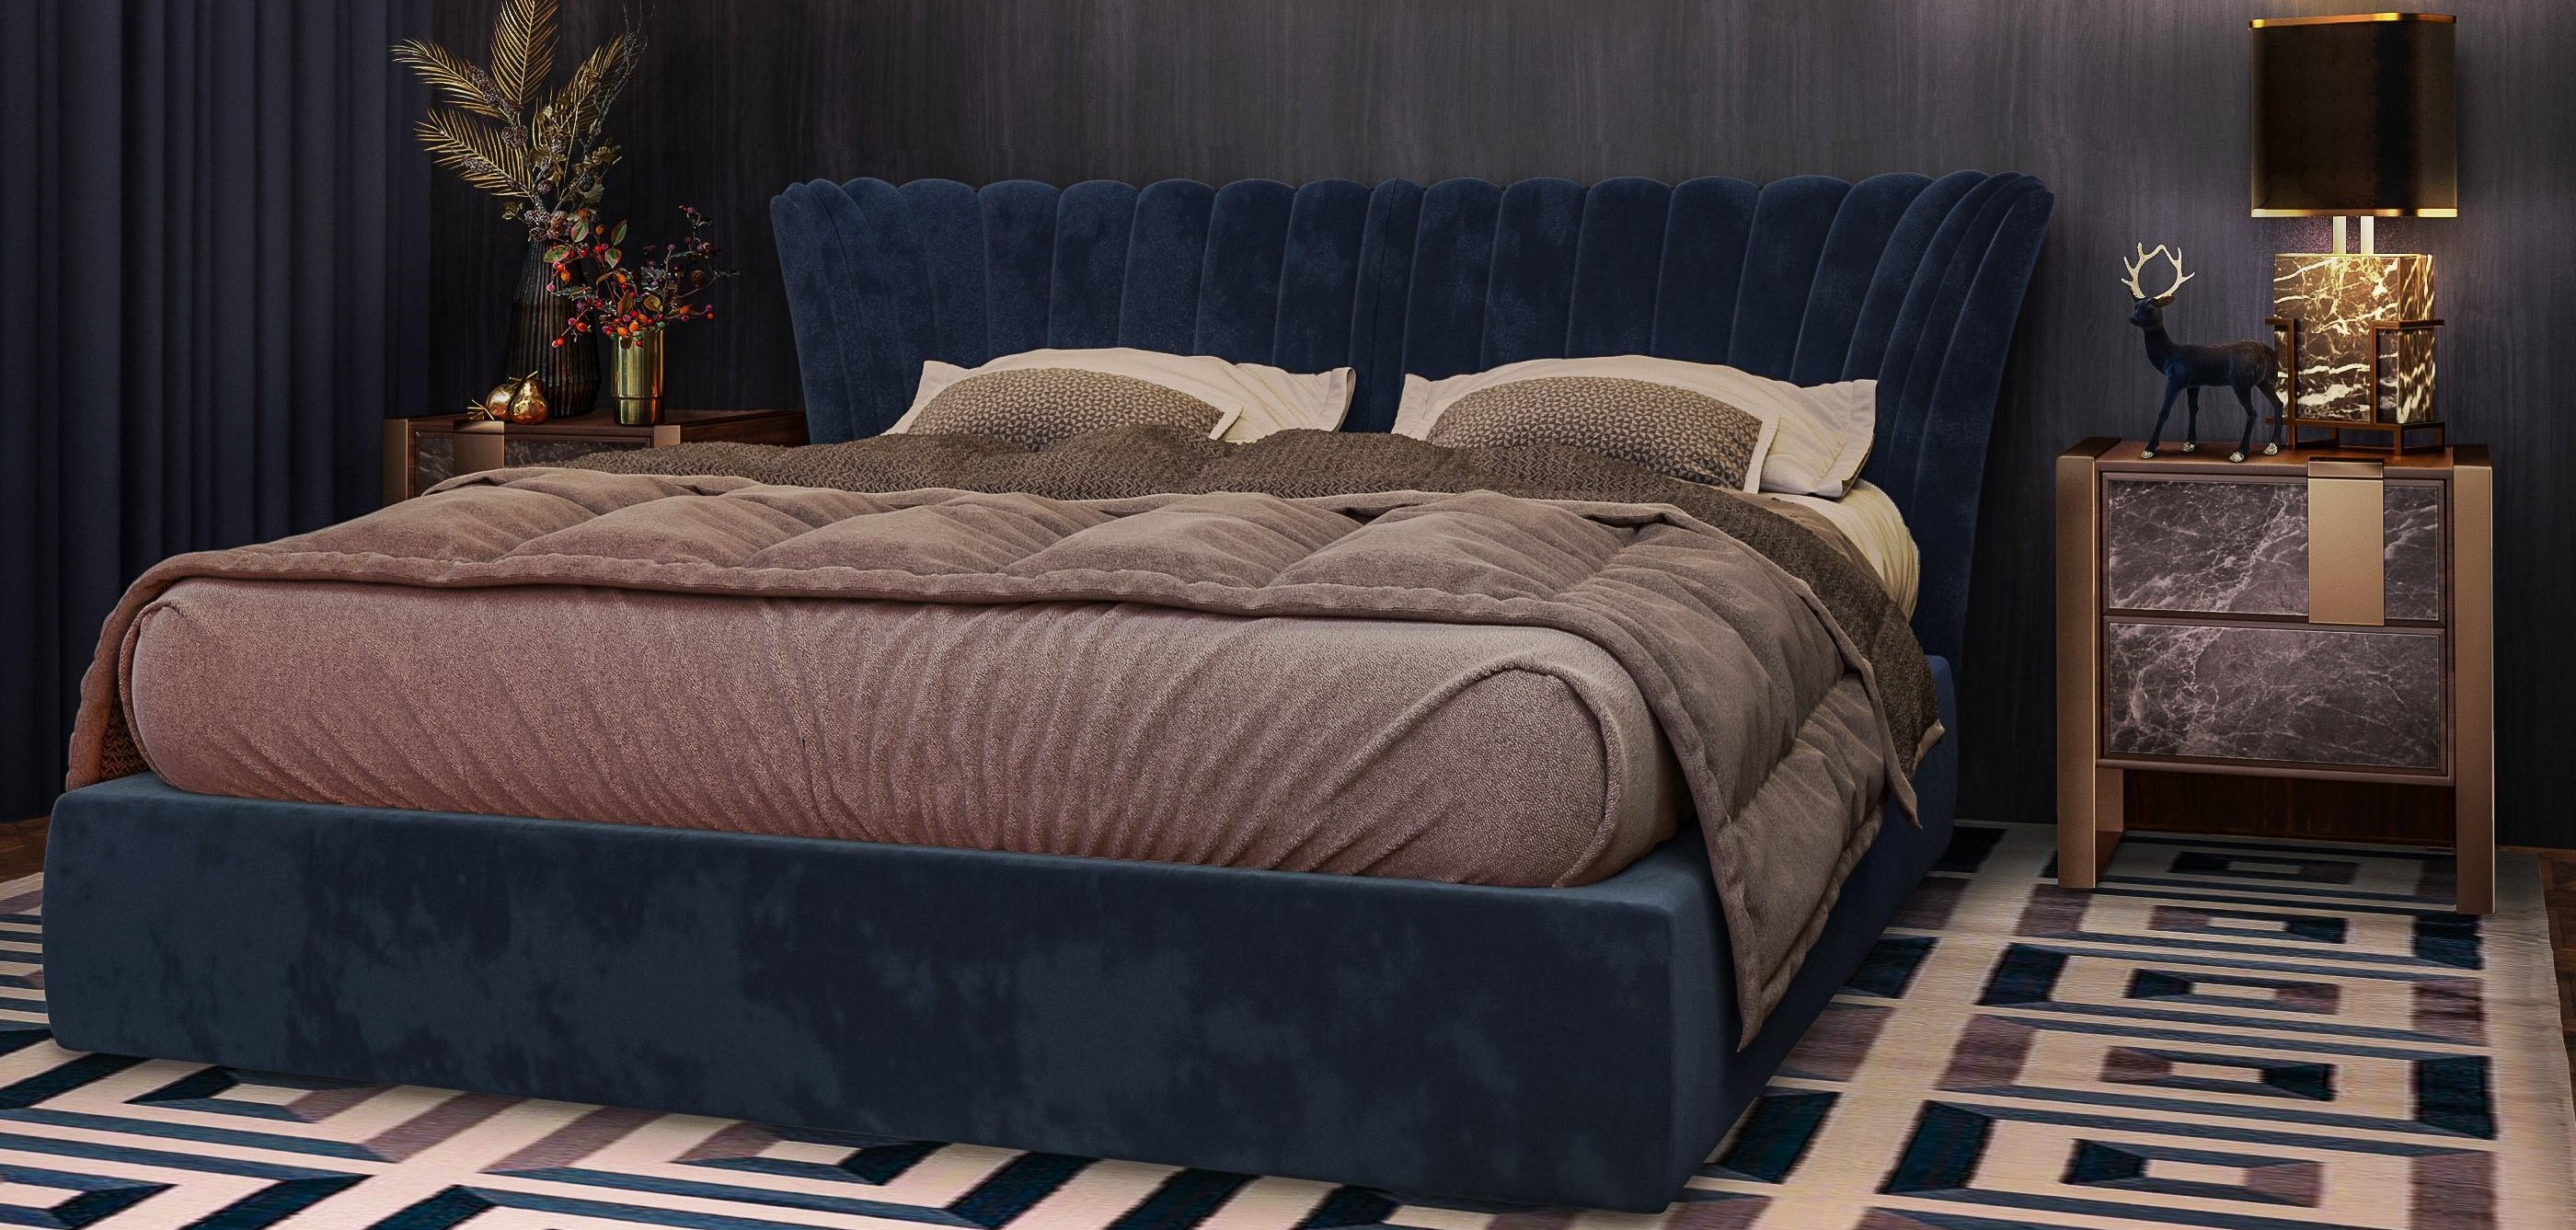 Valerie Mid-Century Modern Bed with classic blue linen